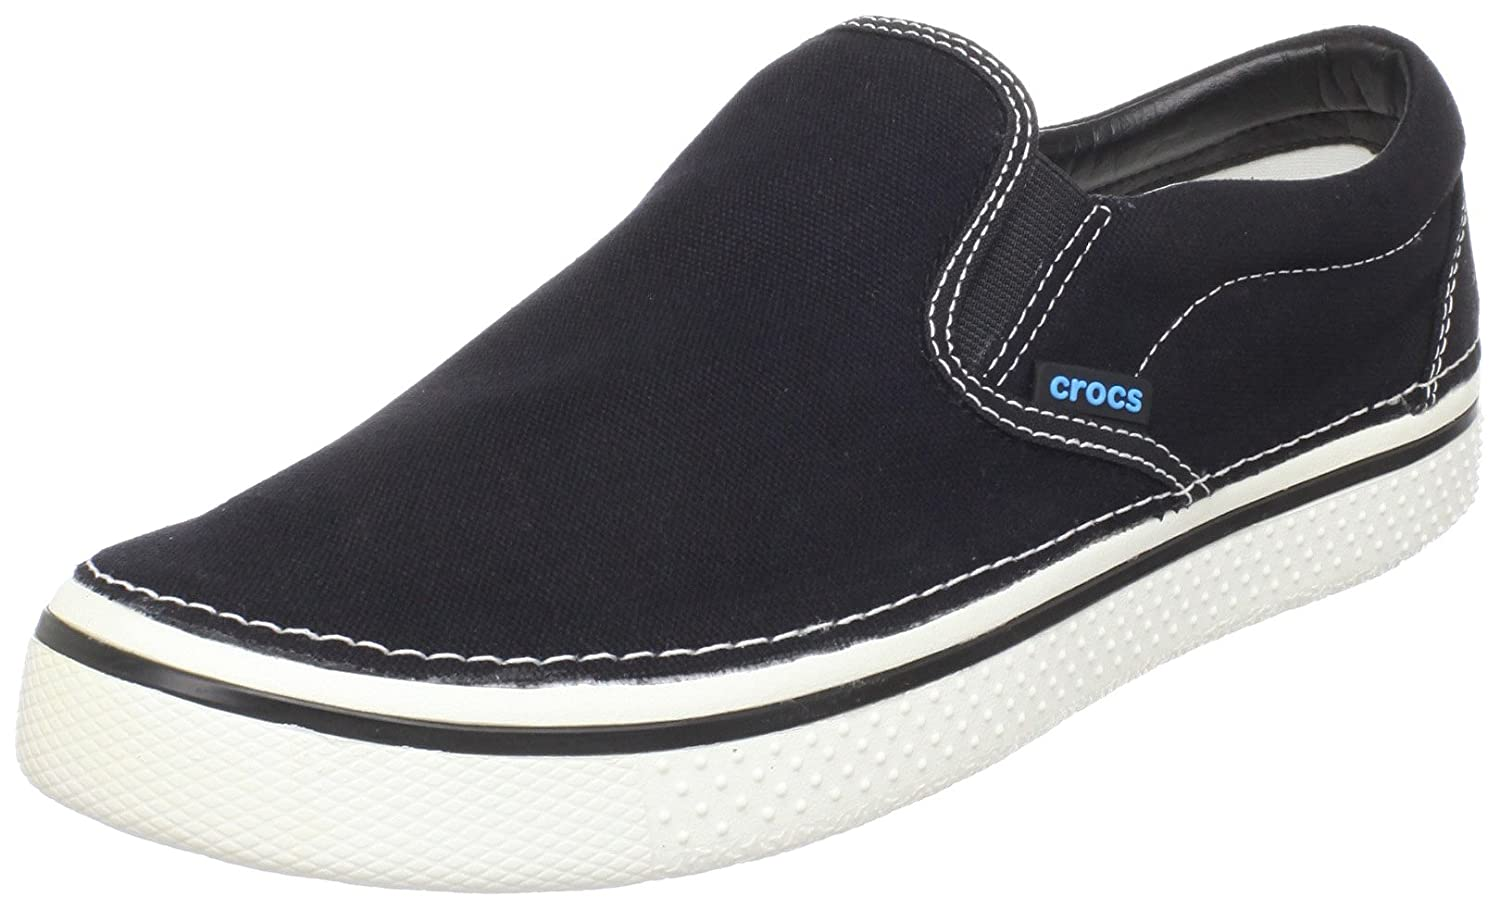 crocs Unisex Hover Slip On Fashion Sneaker $26.24 - $58.04